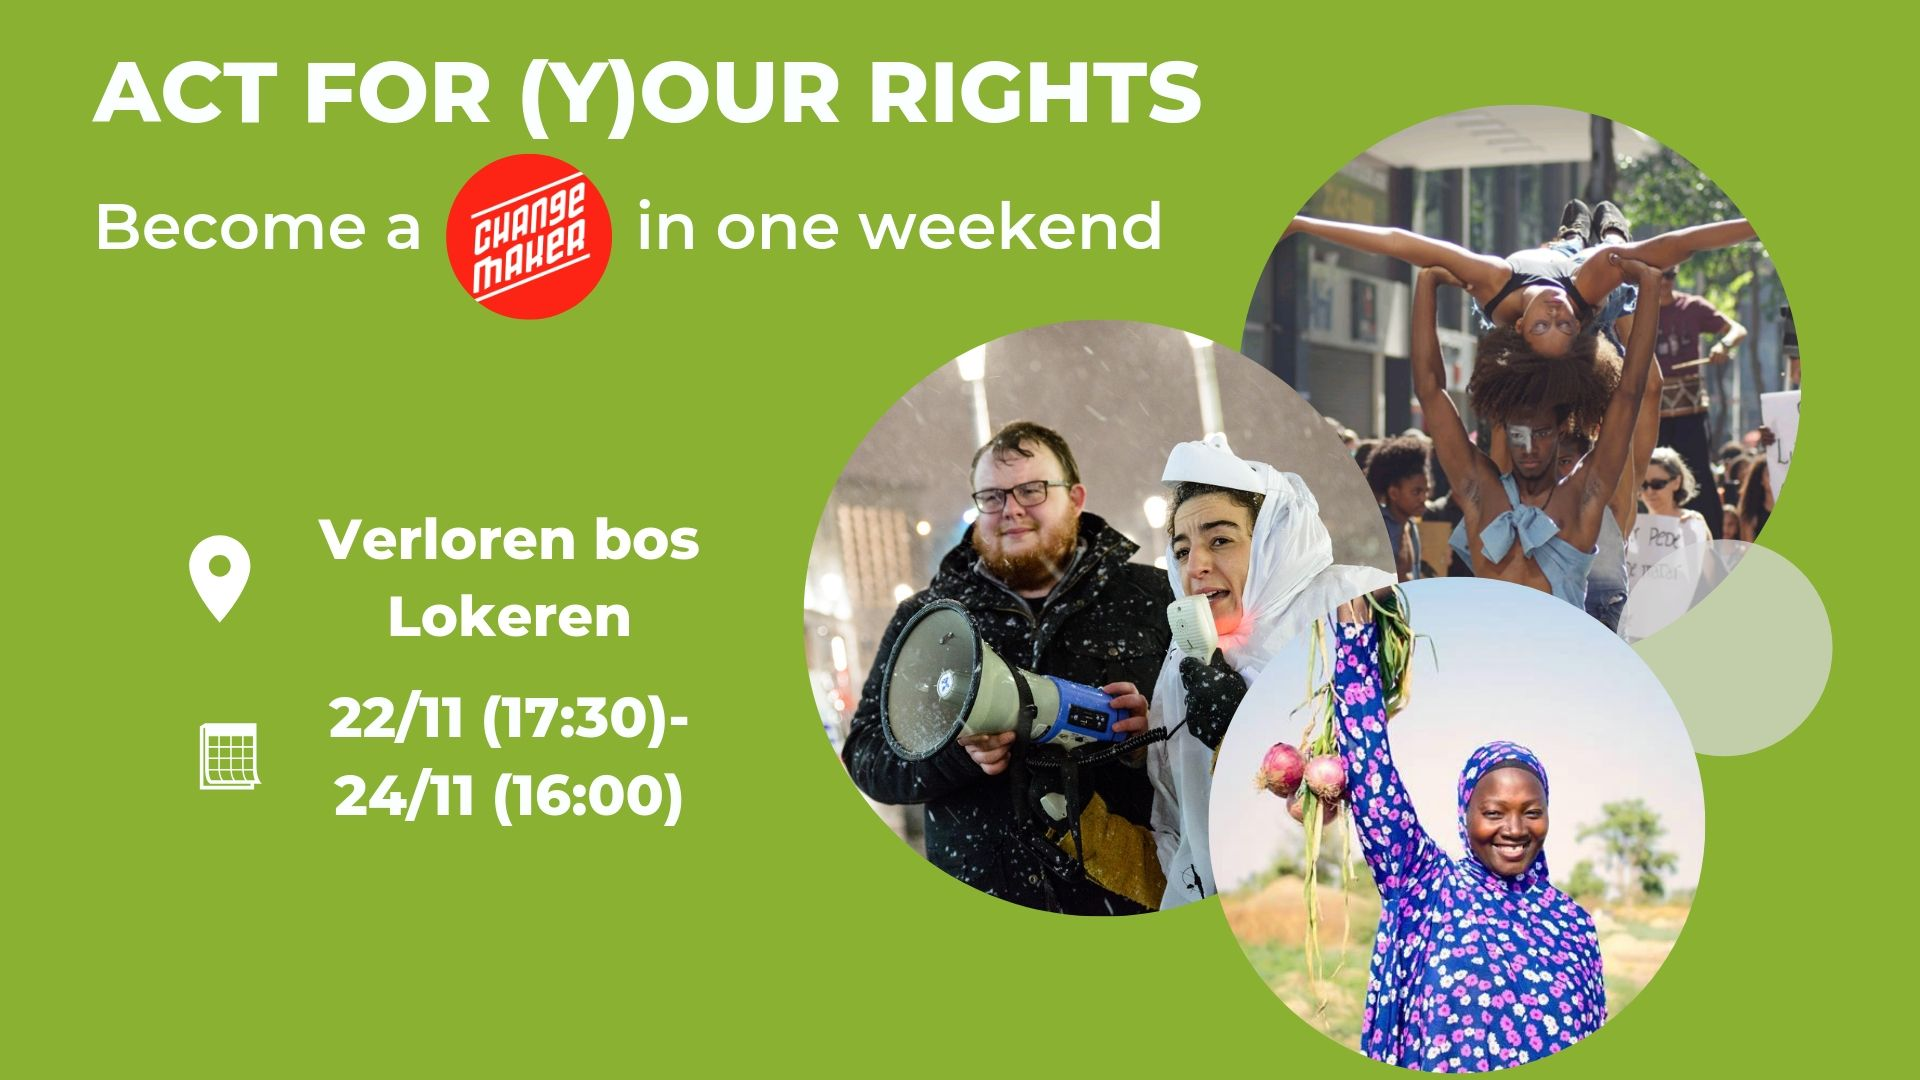 Act for (y)our rights – Become a change maker in a weekend